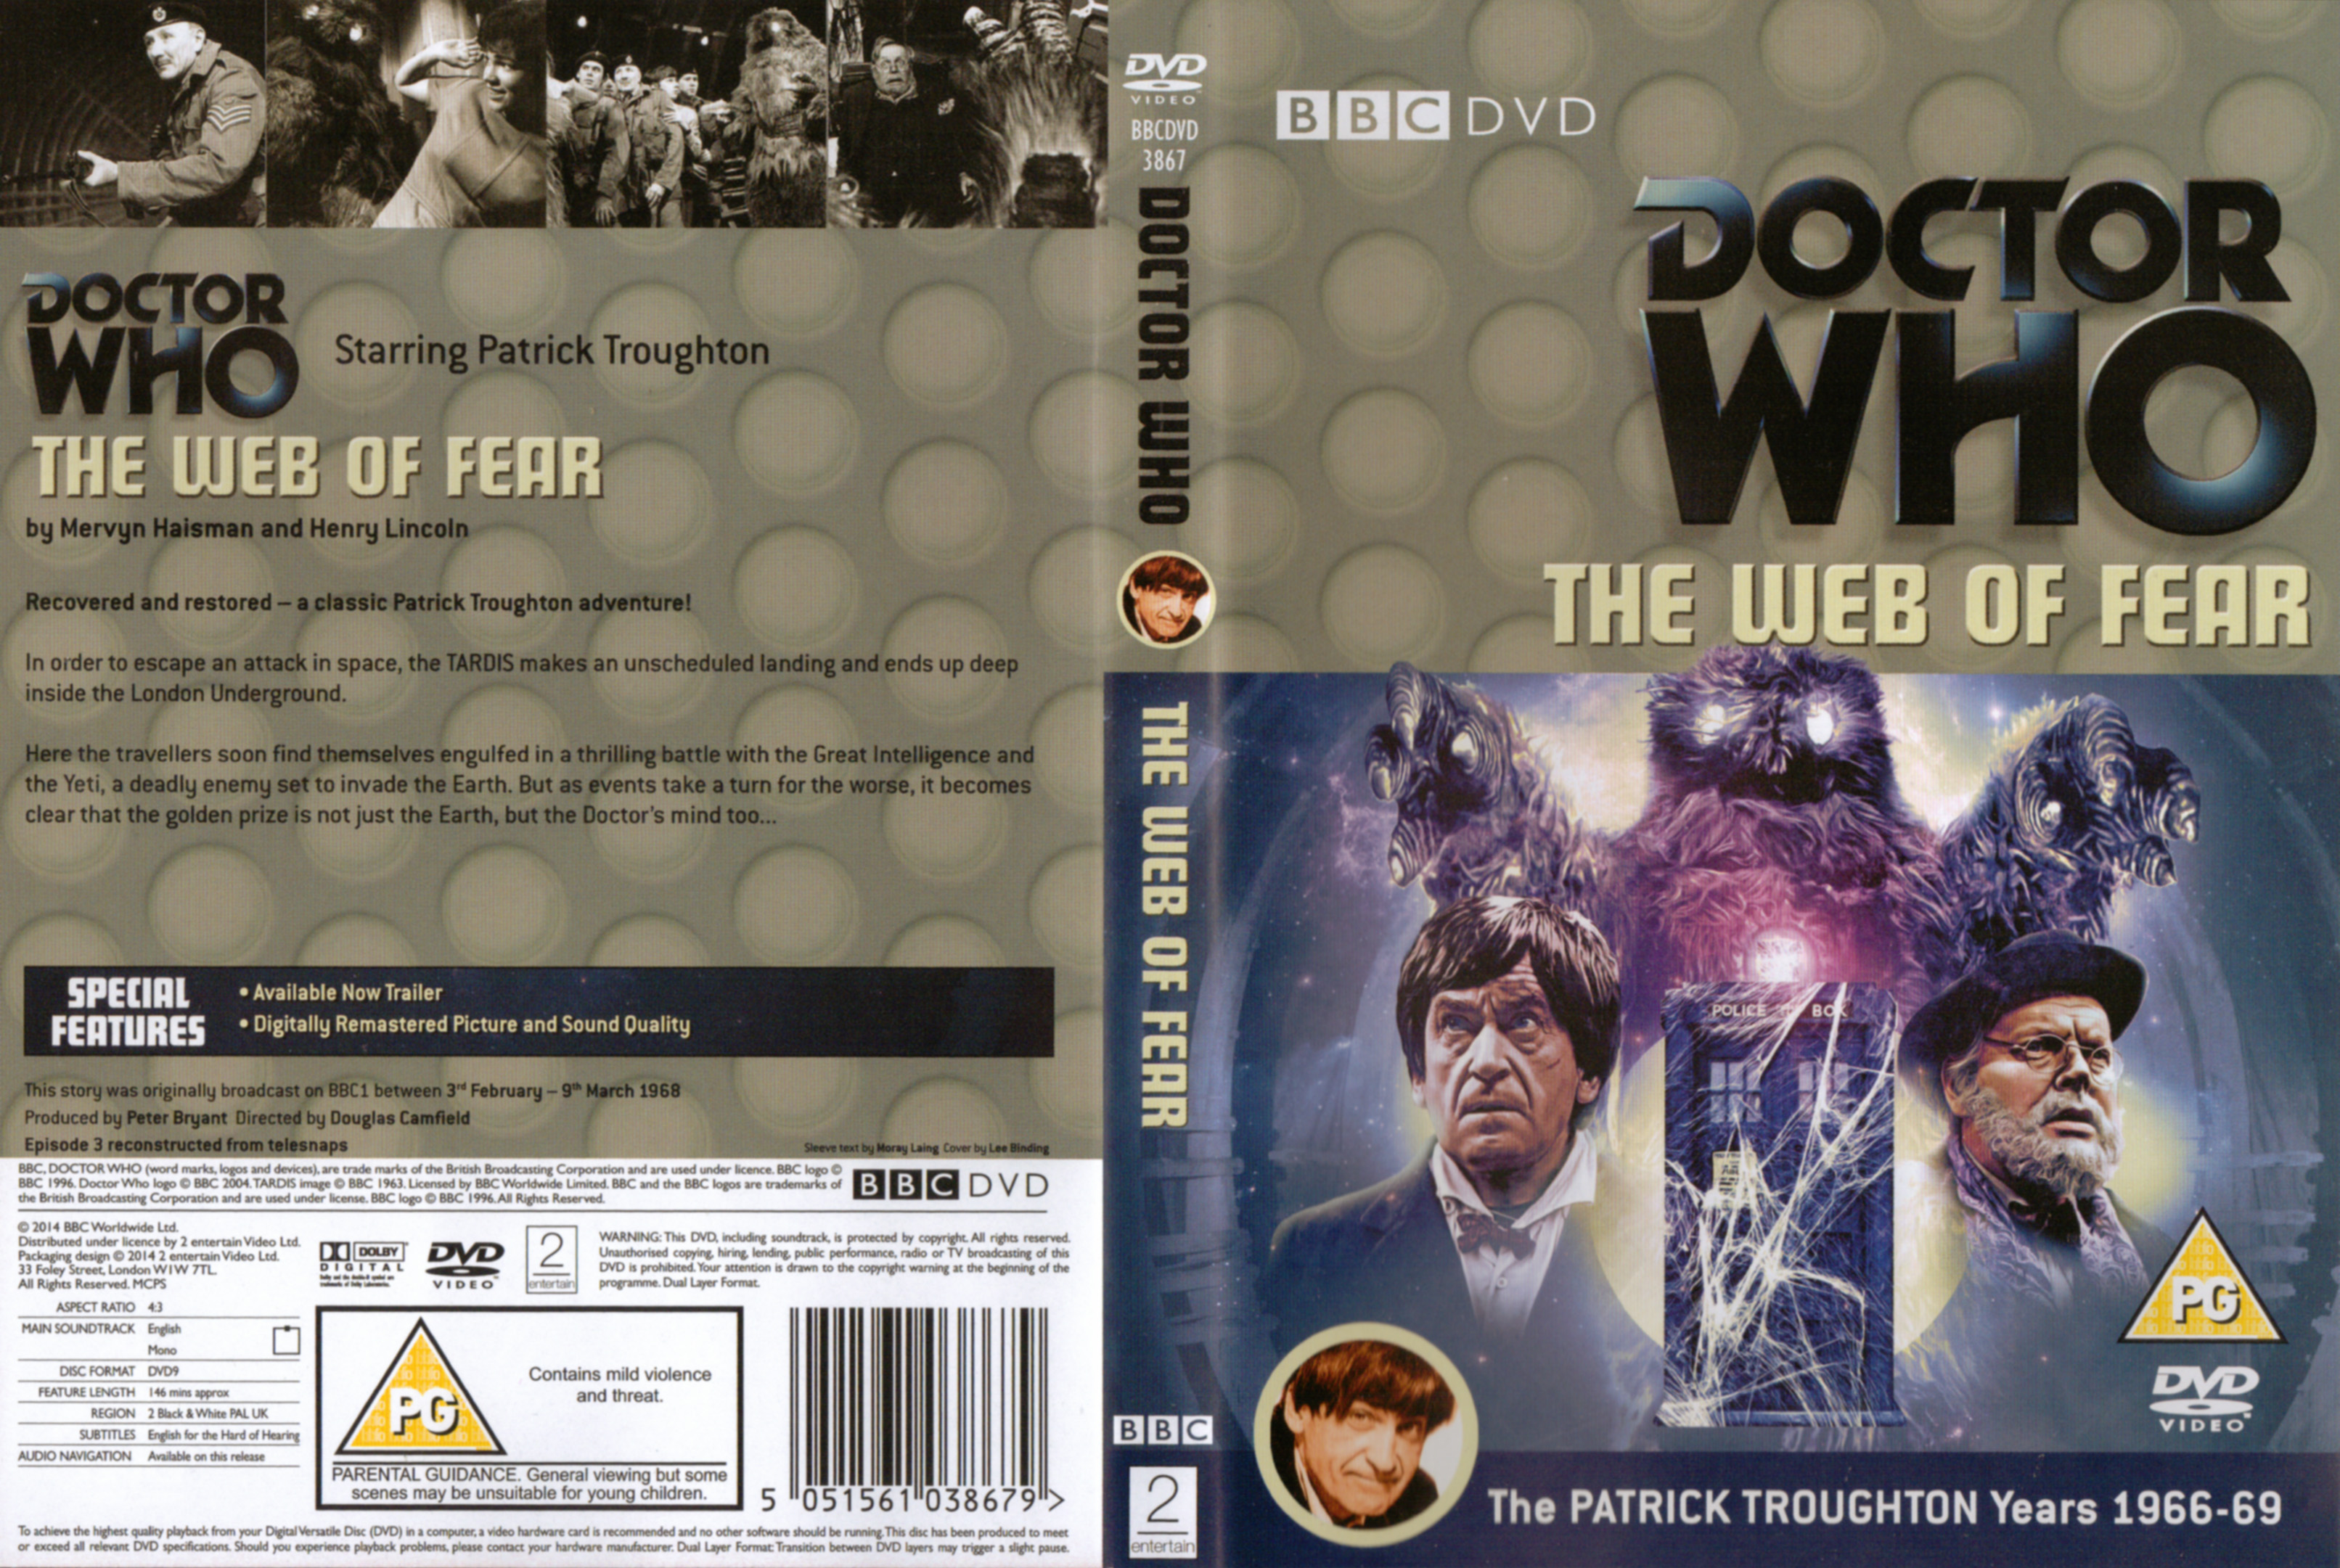 The Web of Fear DVD